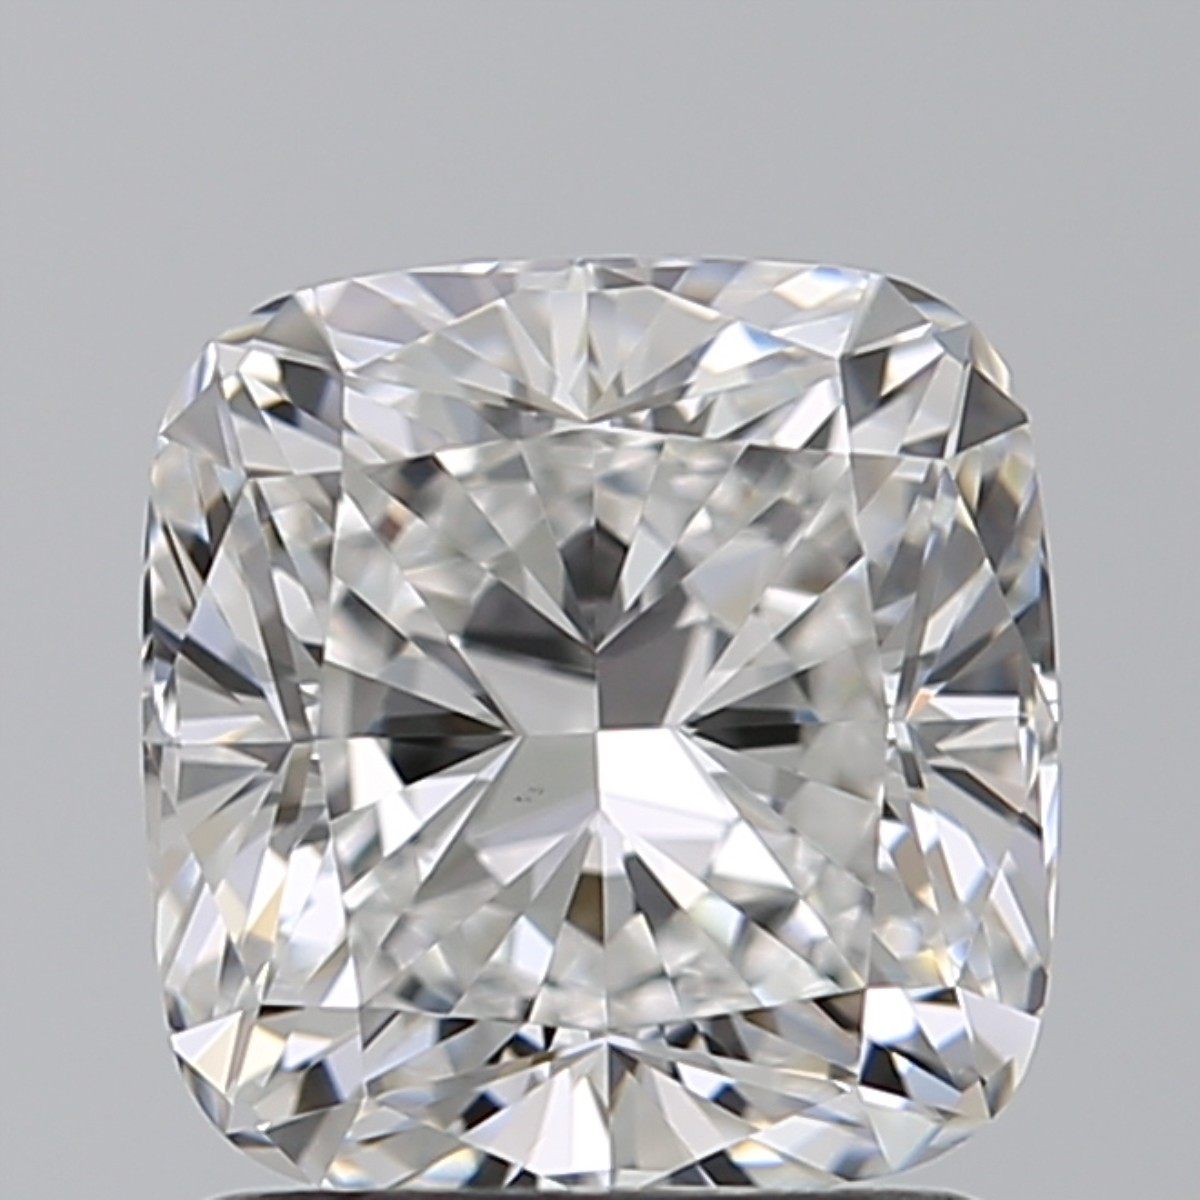 1.52 Carat Cushion Brilliant Diamond (E/VVS2)